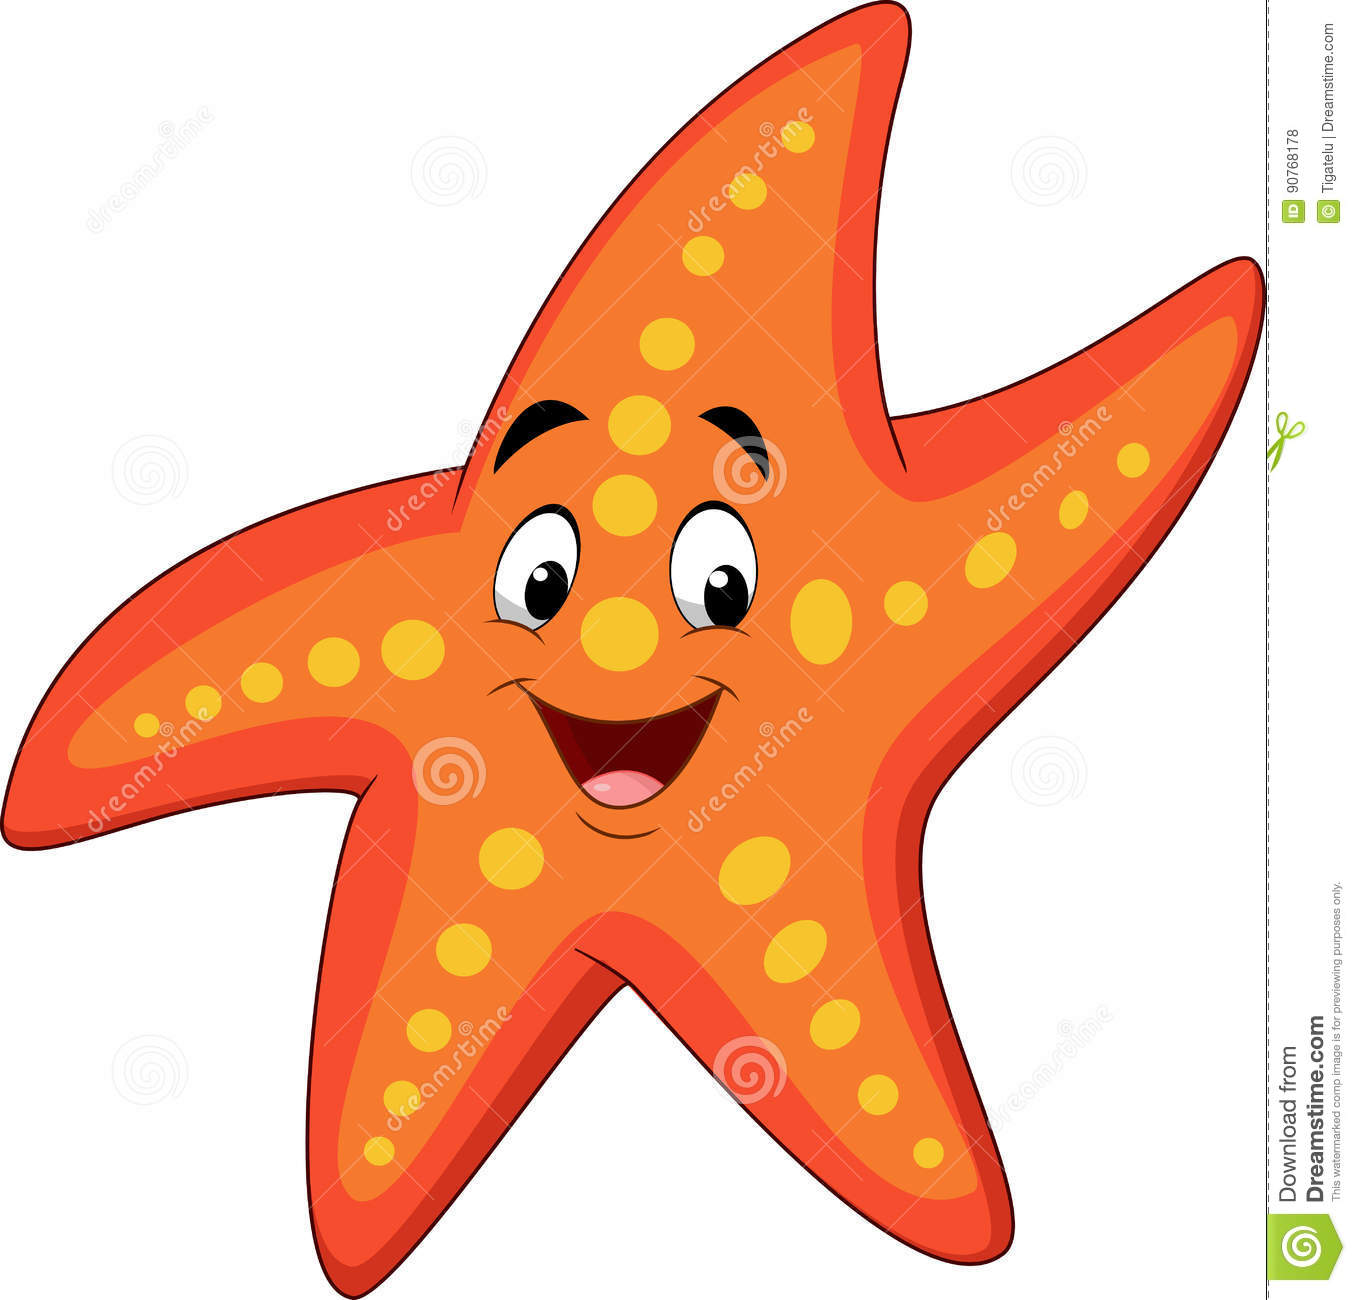 cartoon happy starfish stock vector illustration of space 90768178 rh dreamstime com clipart starfish black and white clipart starfish borders